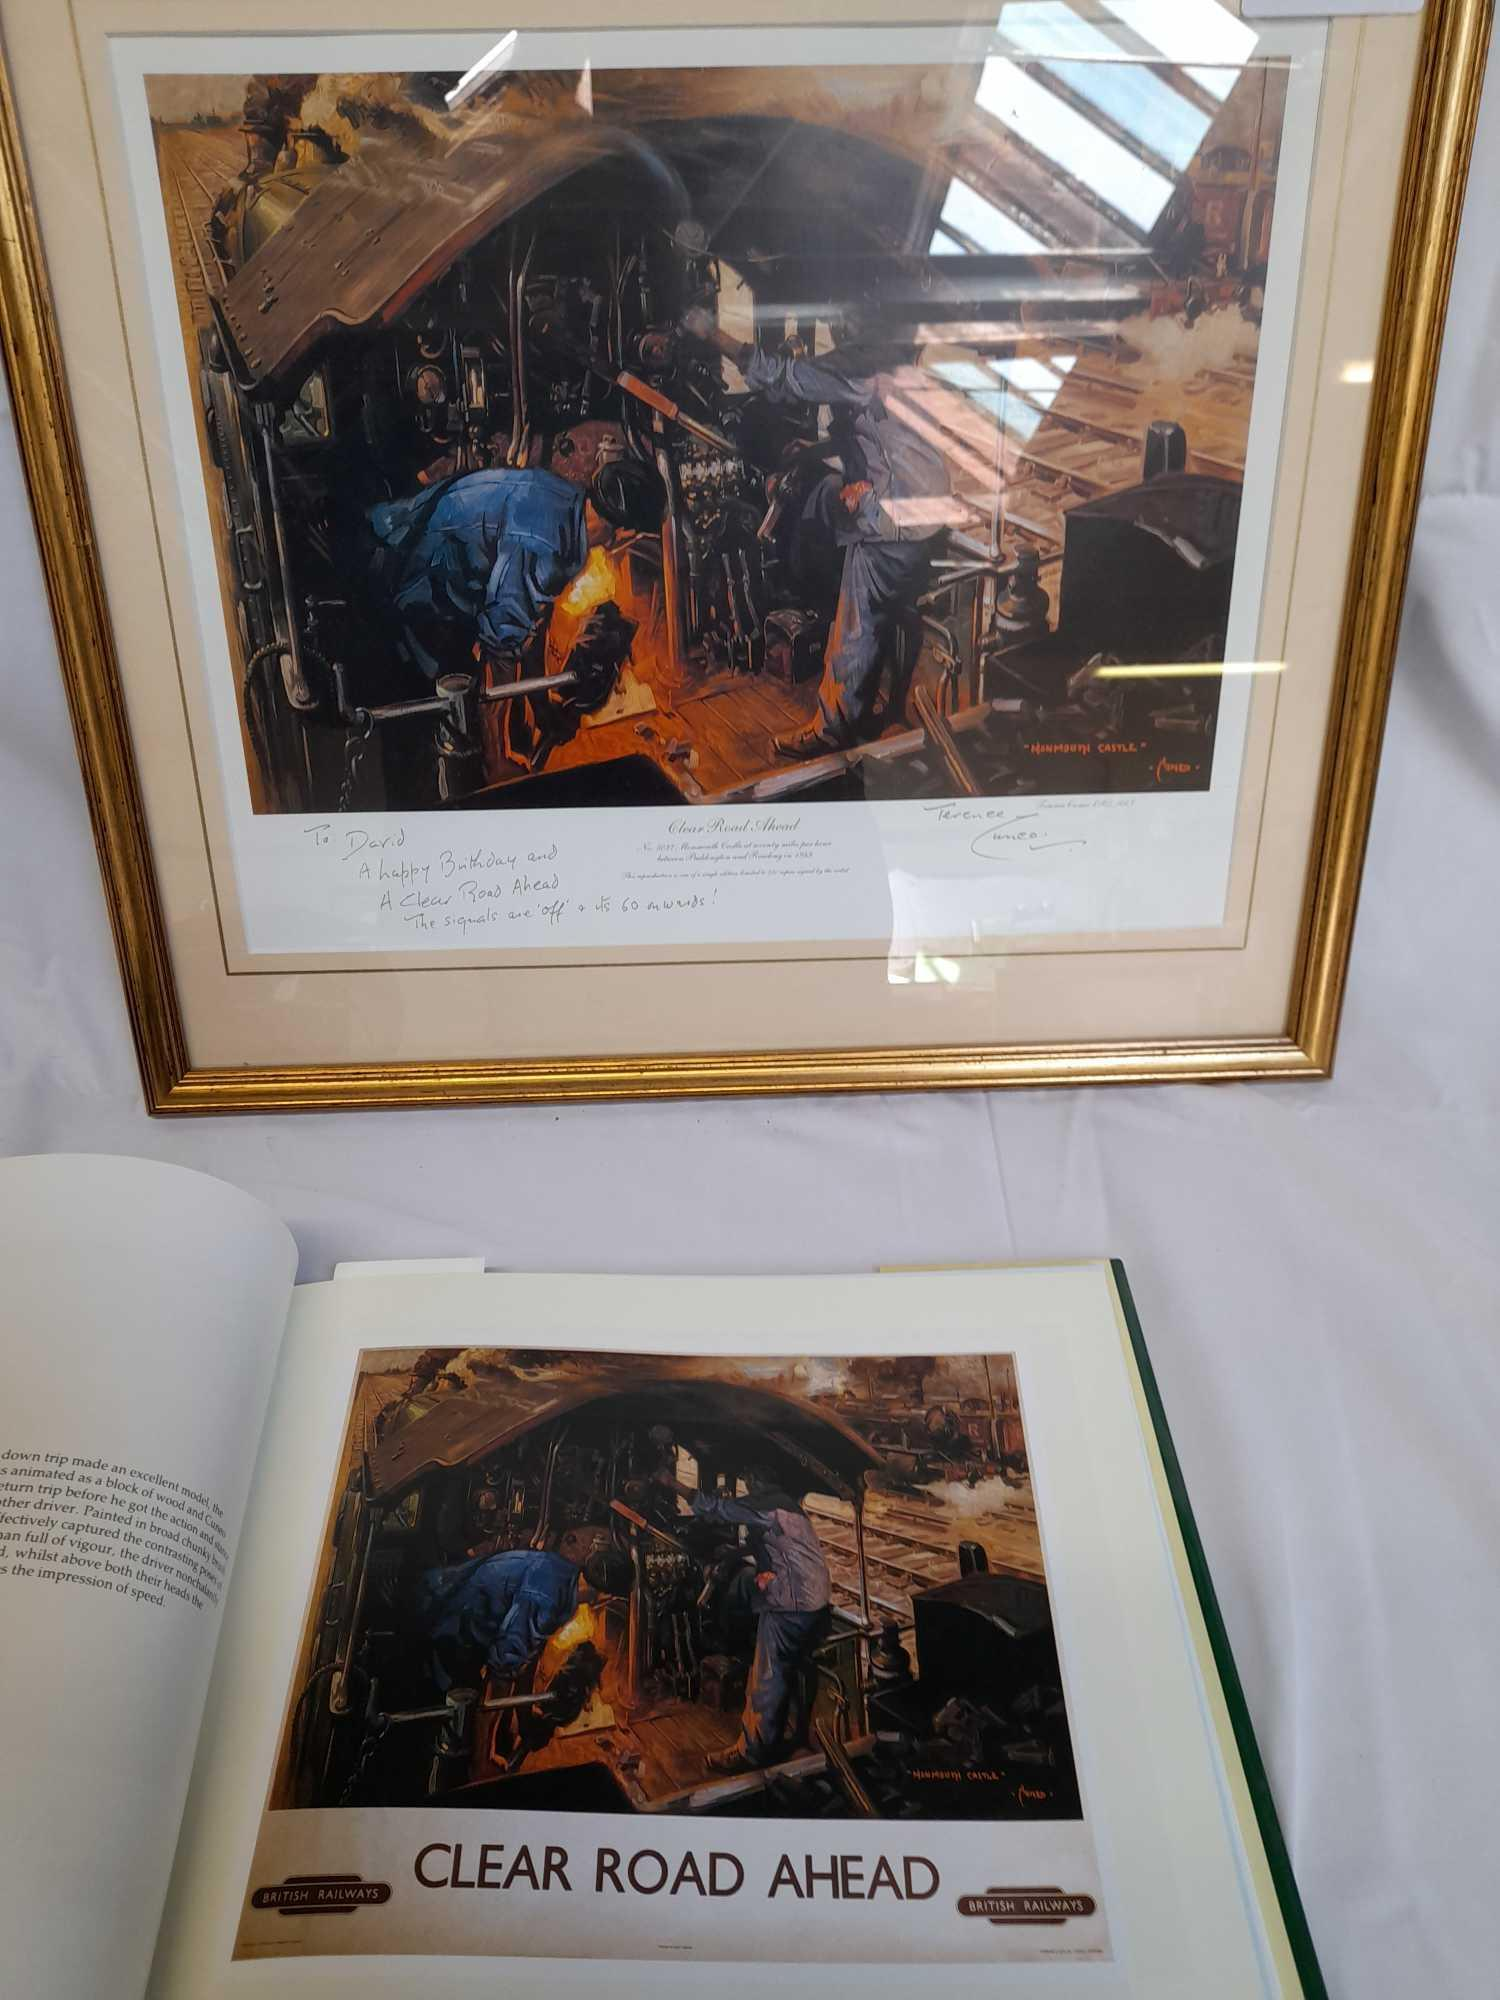 PRINT- CLEAR ROAD AHEAD & BOOK- T CUNEO - Image 6 of 6